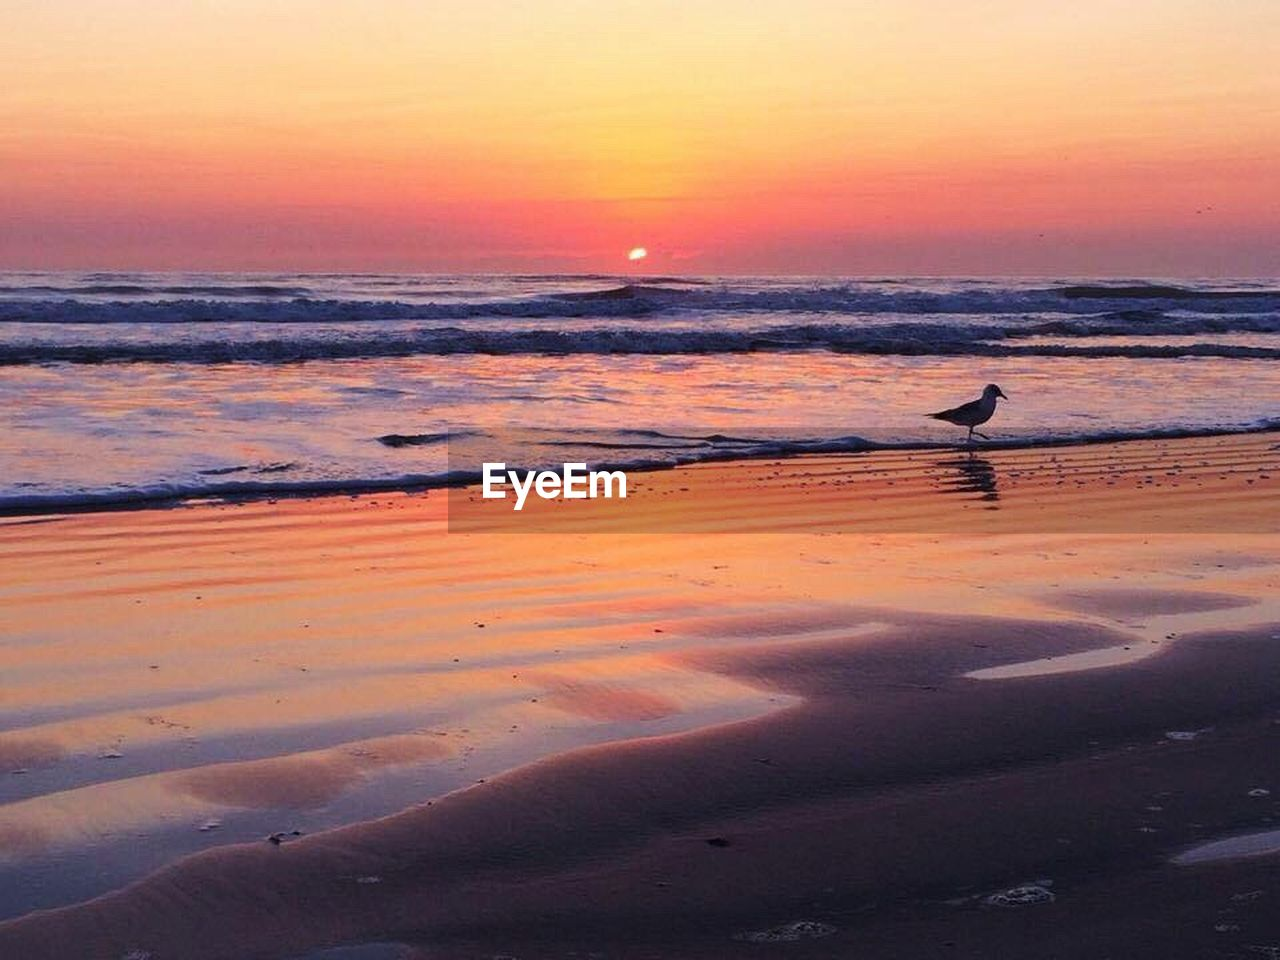 sunset, one animal, nature, animals in the wild, animal themes, sea, animal wildlife, orange color, beauty in nature, bird, scenics, beach, reflection, water, outdoors, tranquil scene, tranquility, wave, horizon over water, no people, sand, sky, mammal, day